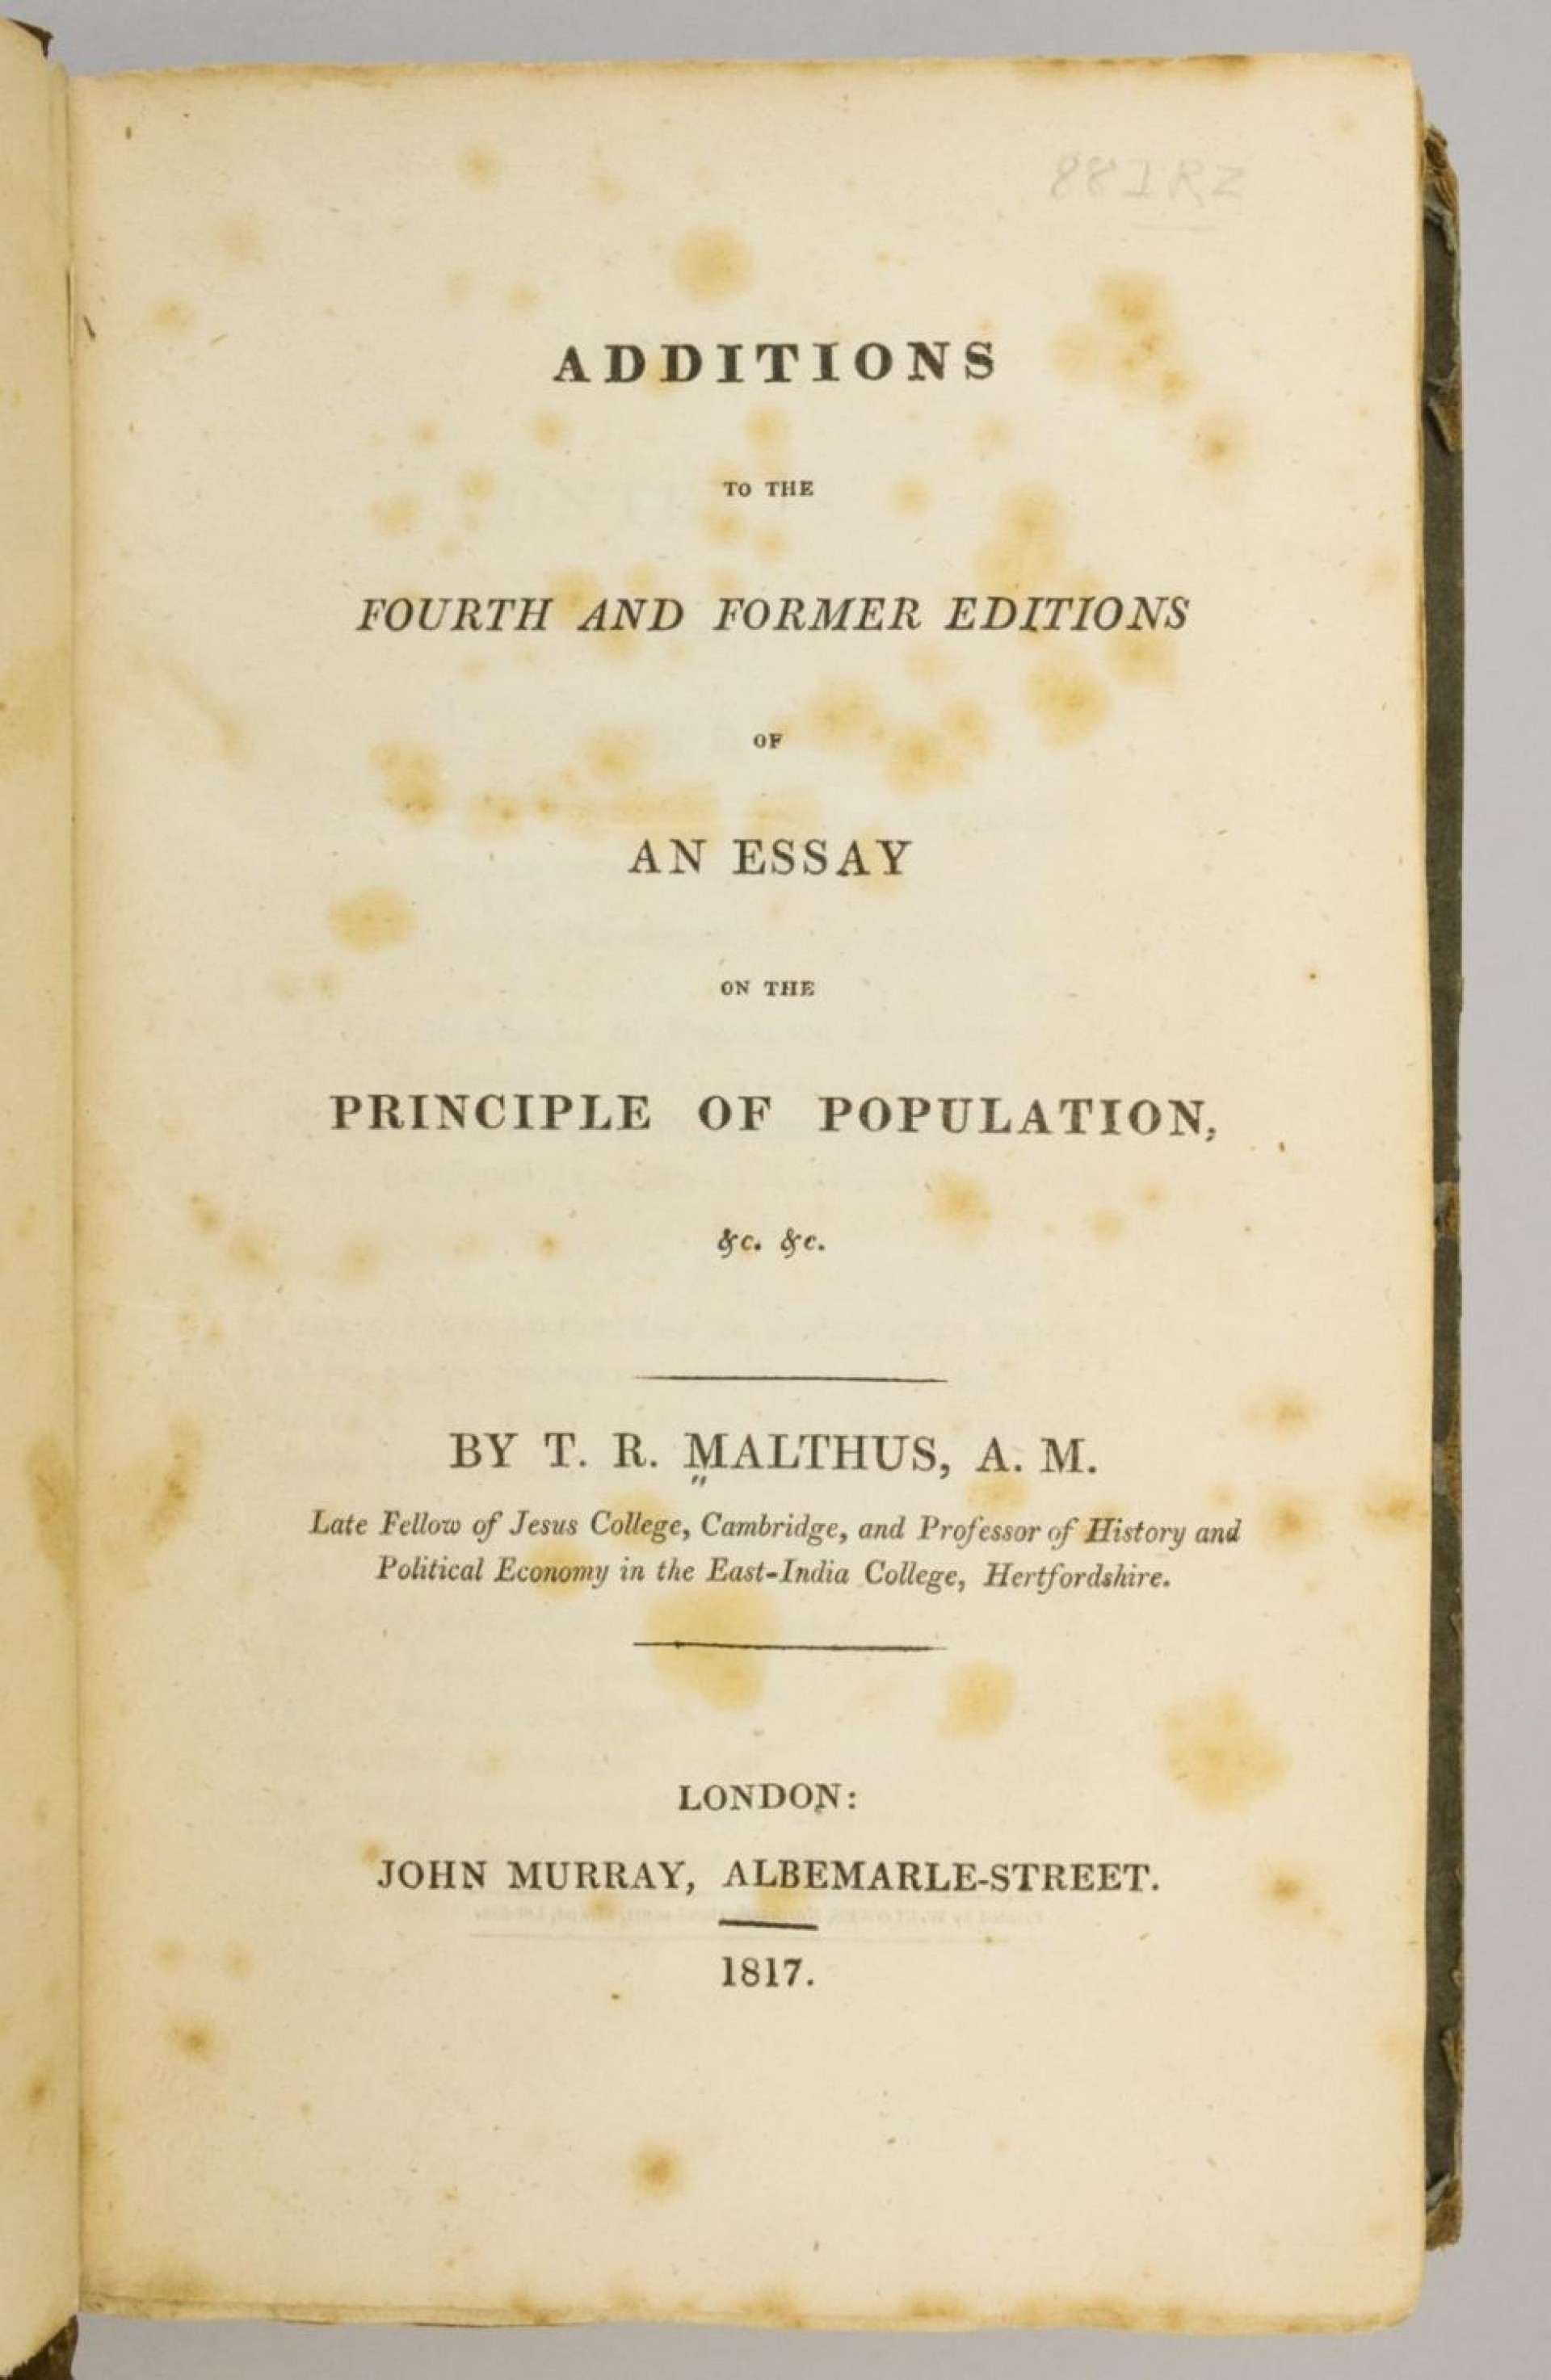 002 Essay Example On The Principle Of Population 5337830061 2 Singular Thomas Malthus Sparknotes Advocated Ap Euro 1920